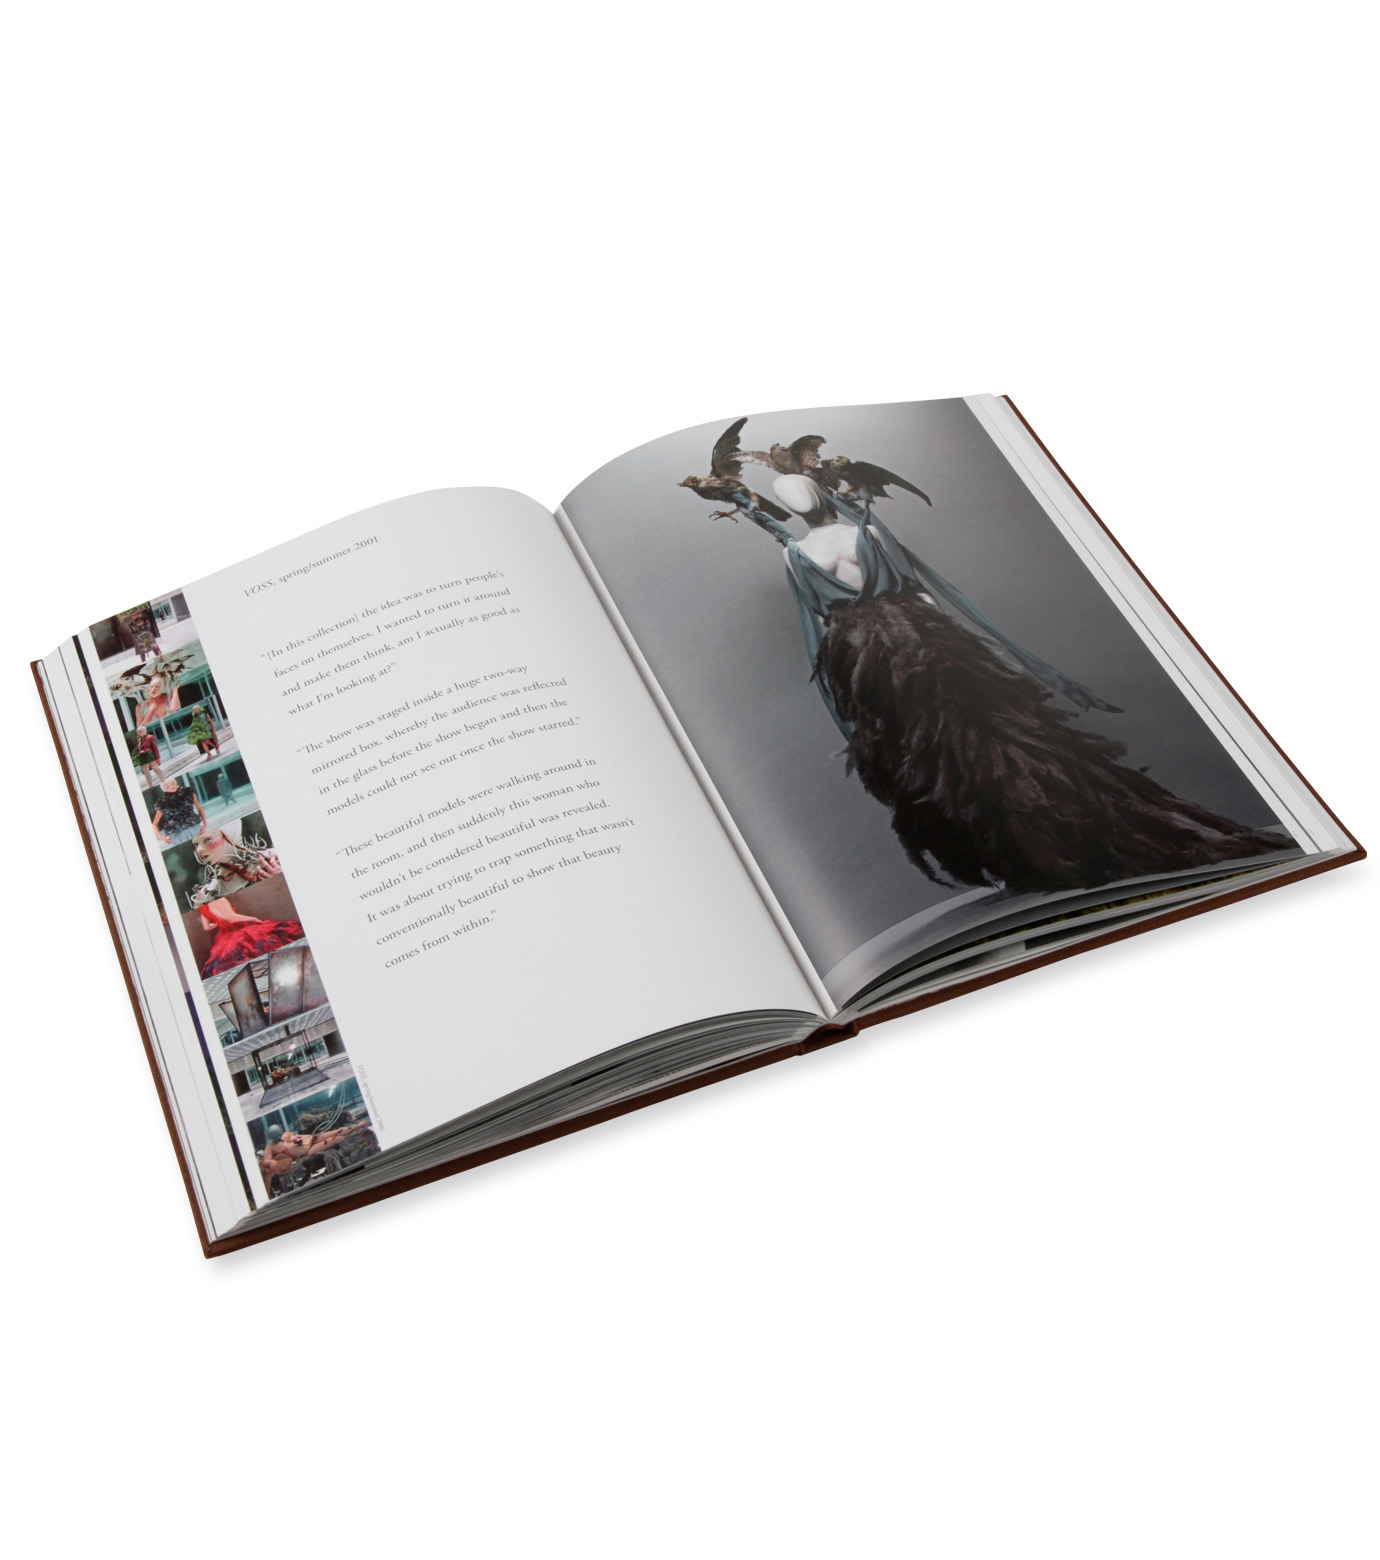 ArtBook(アートブック)のAlexander McQueen: Savage Beauty-SILVER(インテリア/OTHER-GOODS/interior/OTHER-GOODS)-300-16978-2-1 拡大詳細画像5